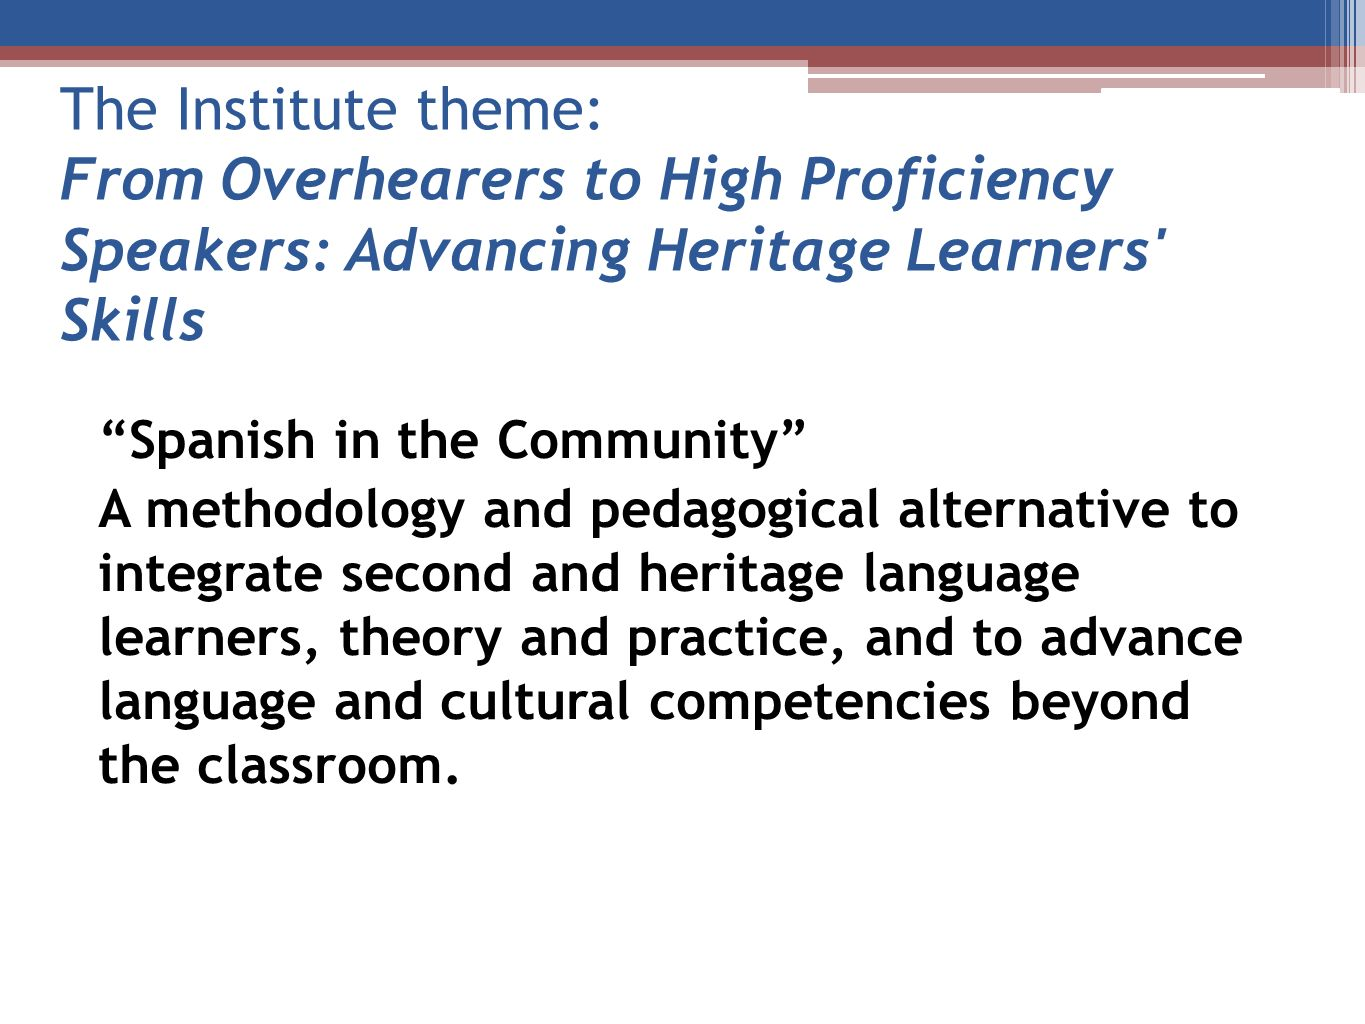 The Results of the National Heritage Language Survey: Implications for Teaching, Curriculum Design, and Professional Development (Carreira and Kagan, 2011) On the basis of these findings, we have argued that a community-based curriculum represents an effective way to harness the wealth of knowledge and experiences that students bring to the classroom and to respond to their goals for their HL.